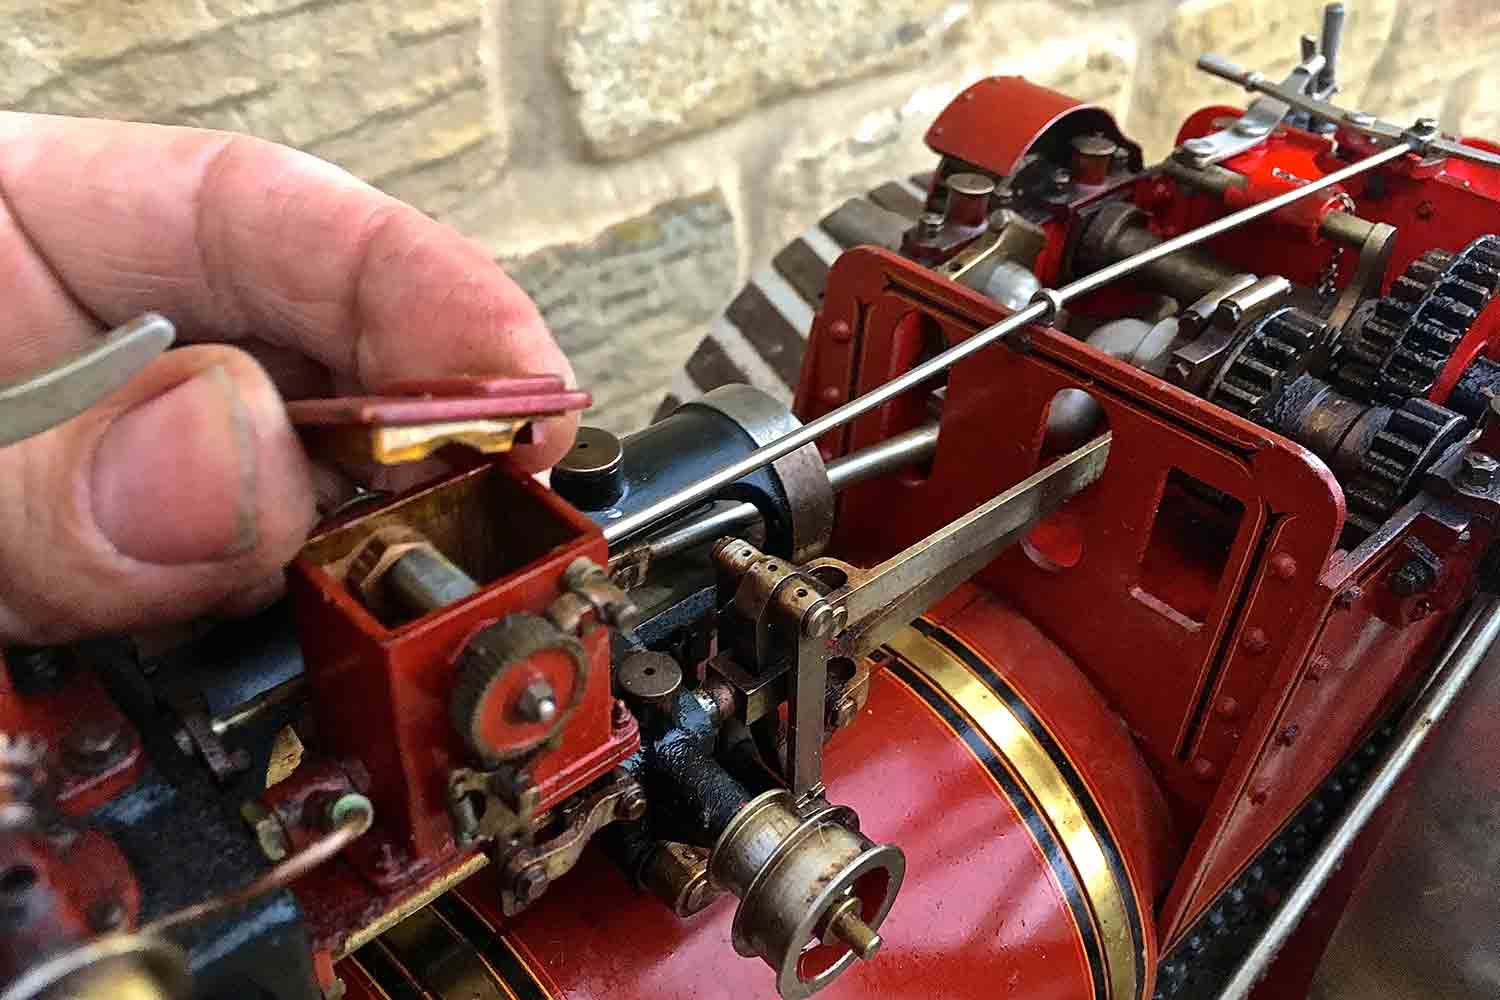 test Alchin-Traction-Engine-Royal-Chester-live-steam-model-for-sale-27